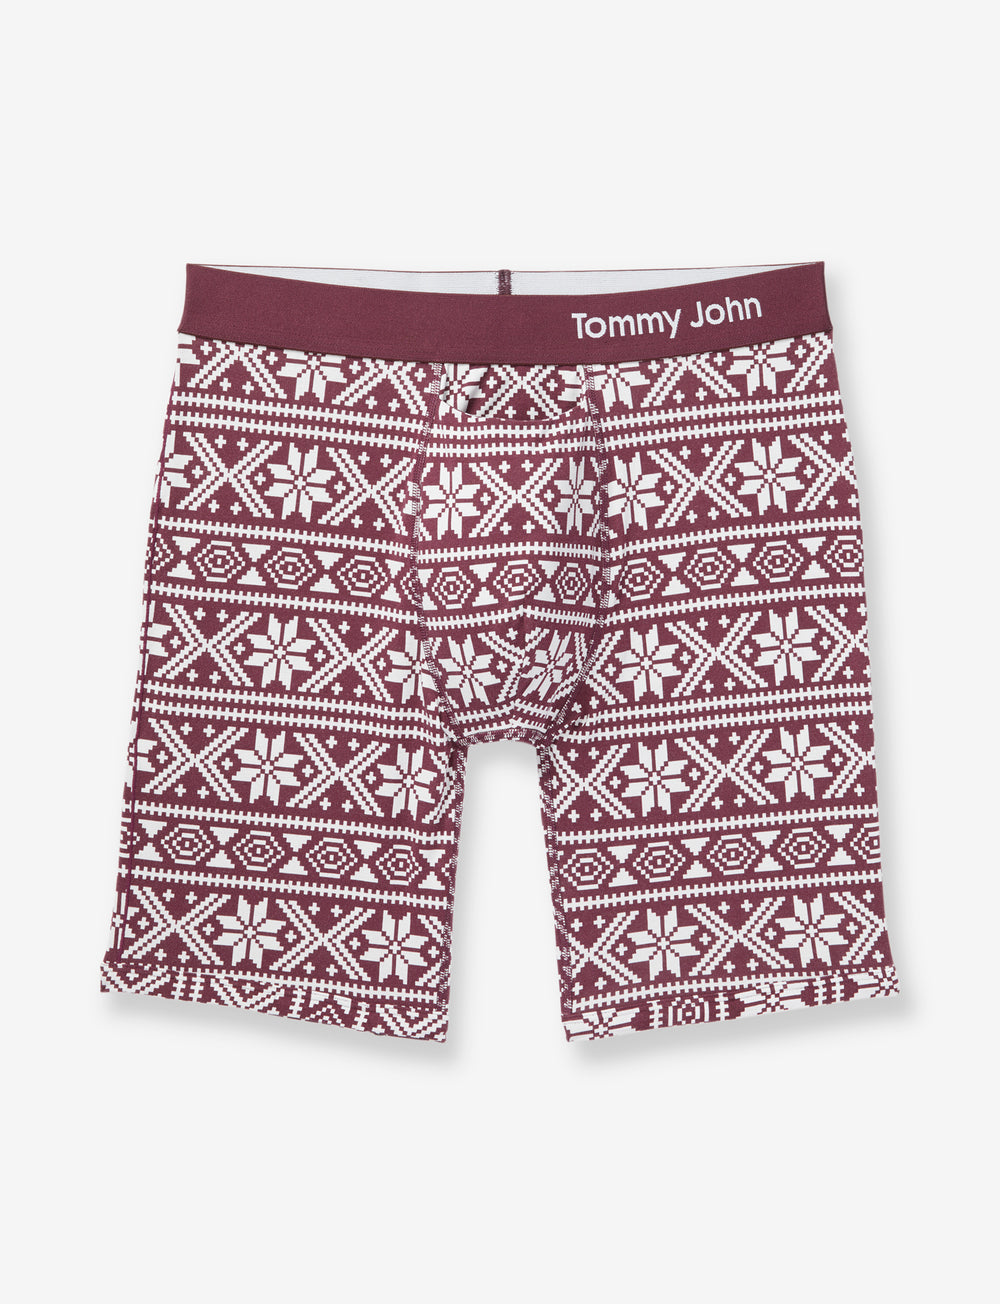 Cool Cotton Nordic Print Boxer Brief Details Image